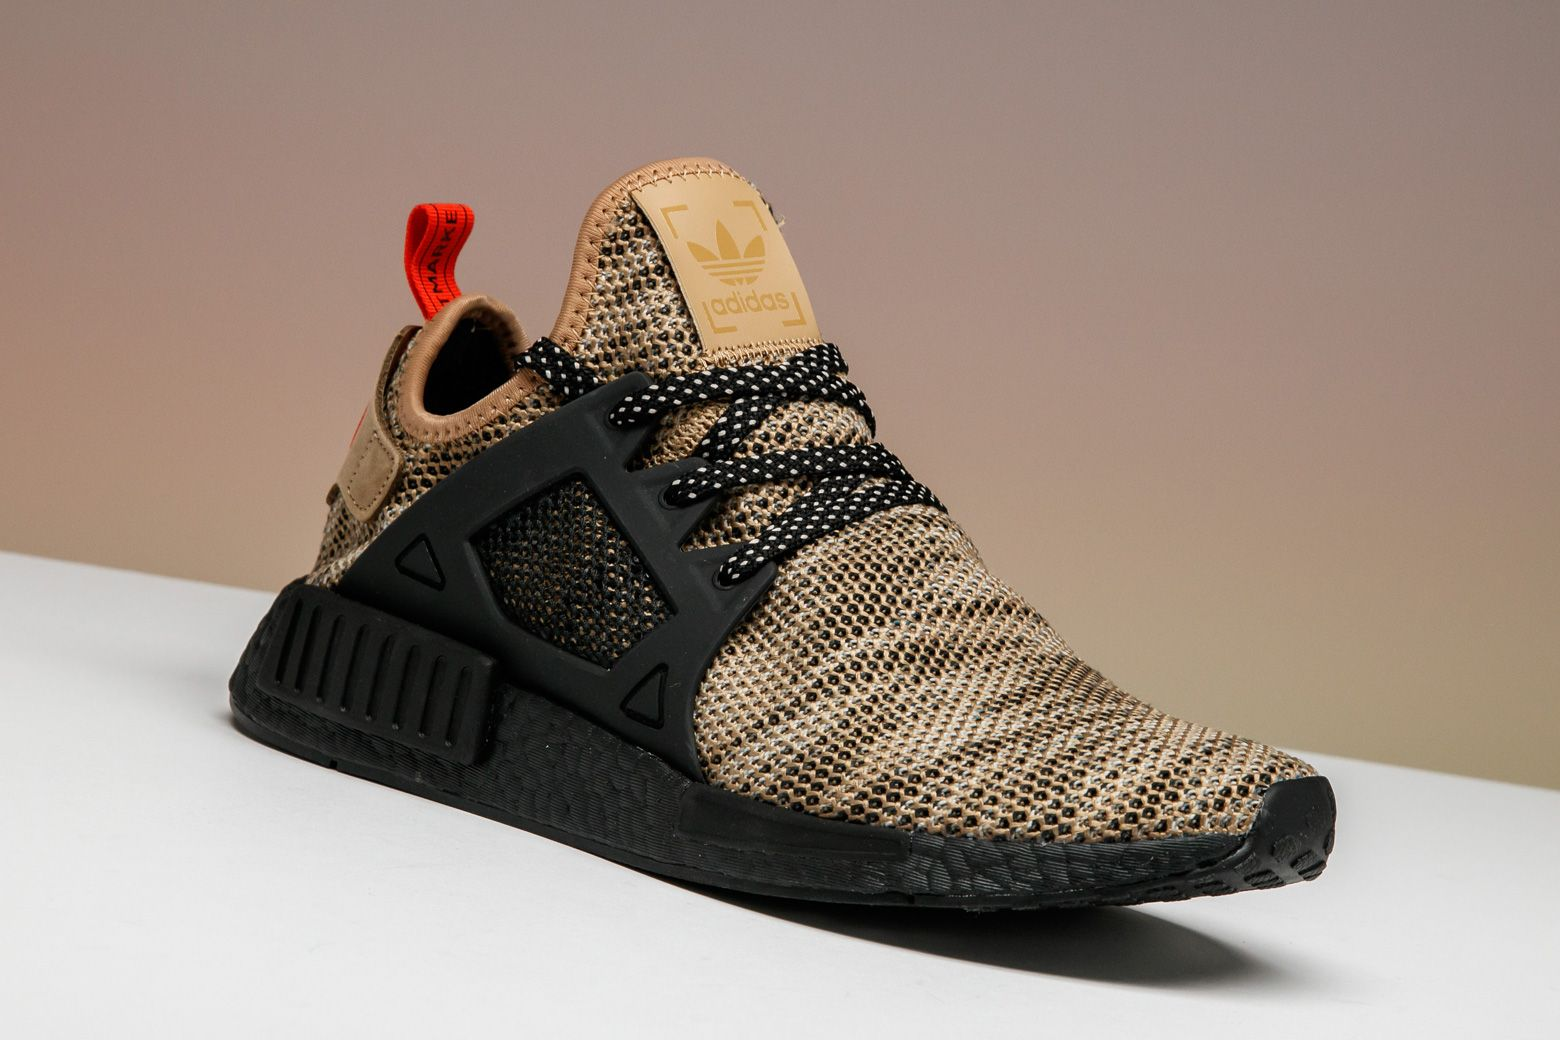 17a6c84a1bece0 This brown NMD XR1 was released in a trio of Europe-exclusive colorways  early 2017.